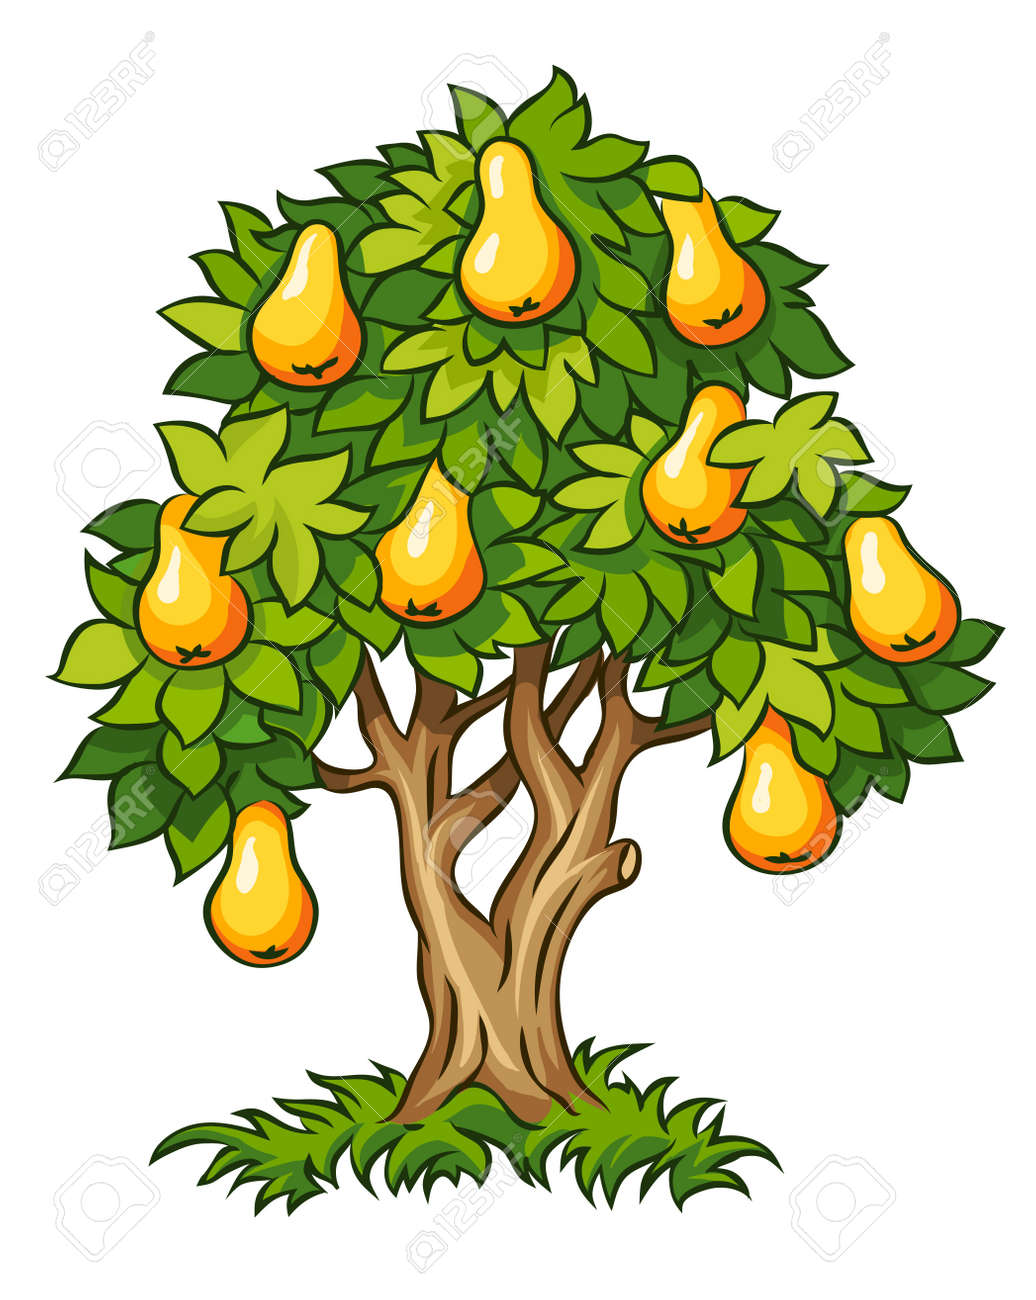 pear tree with ripe fruits illustration isolated on white background Stock Vector - 14646518